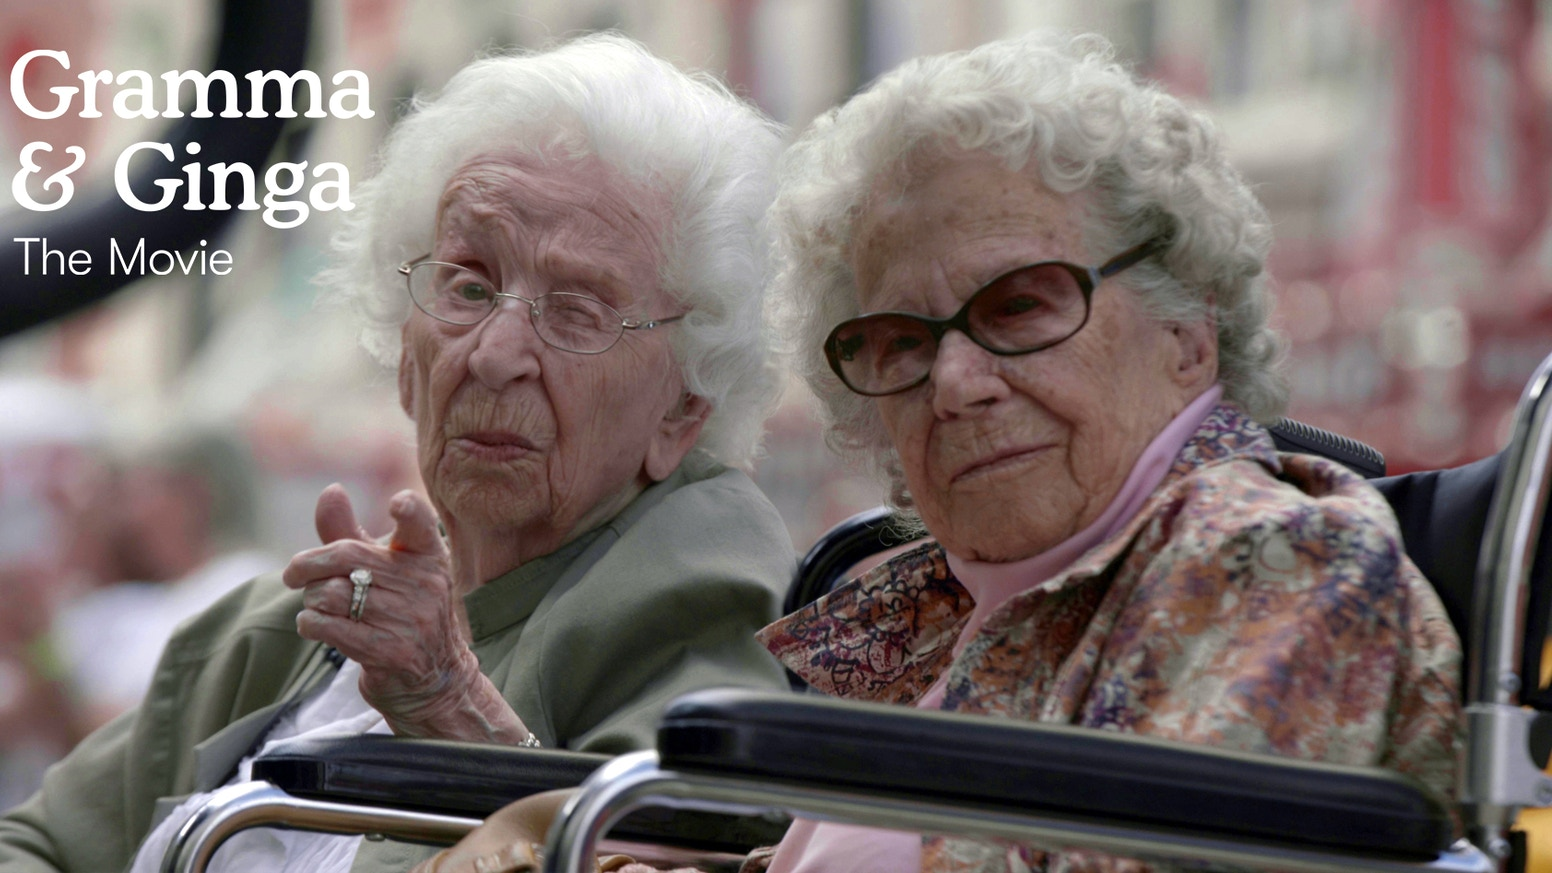 A short documentary about beloved sisters Gramma and Ginga who, at ages 106 and 101, are world-famous internet superstars! COMING SOON!